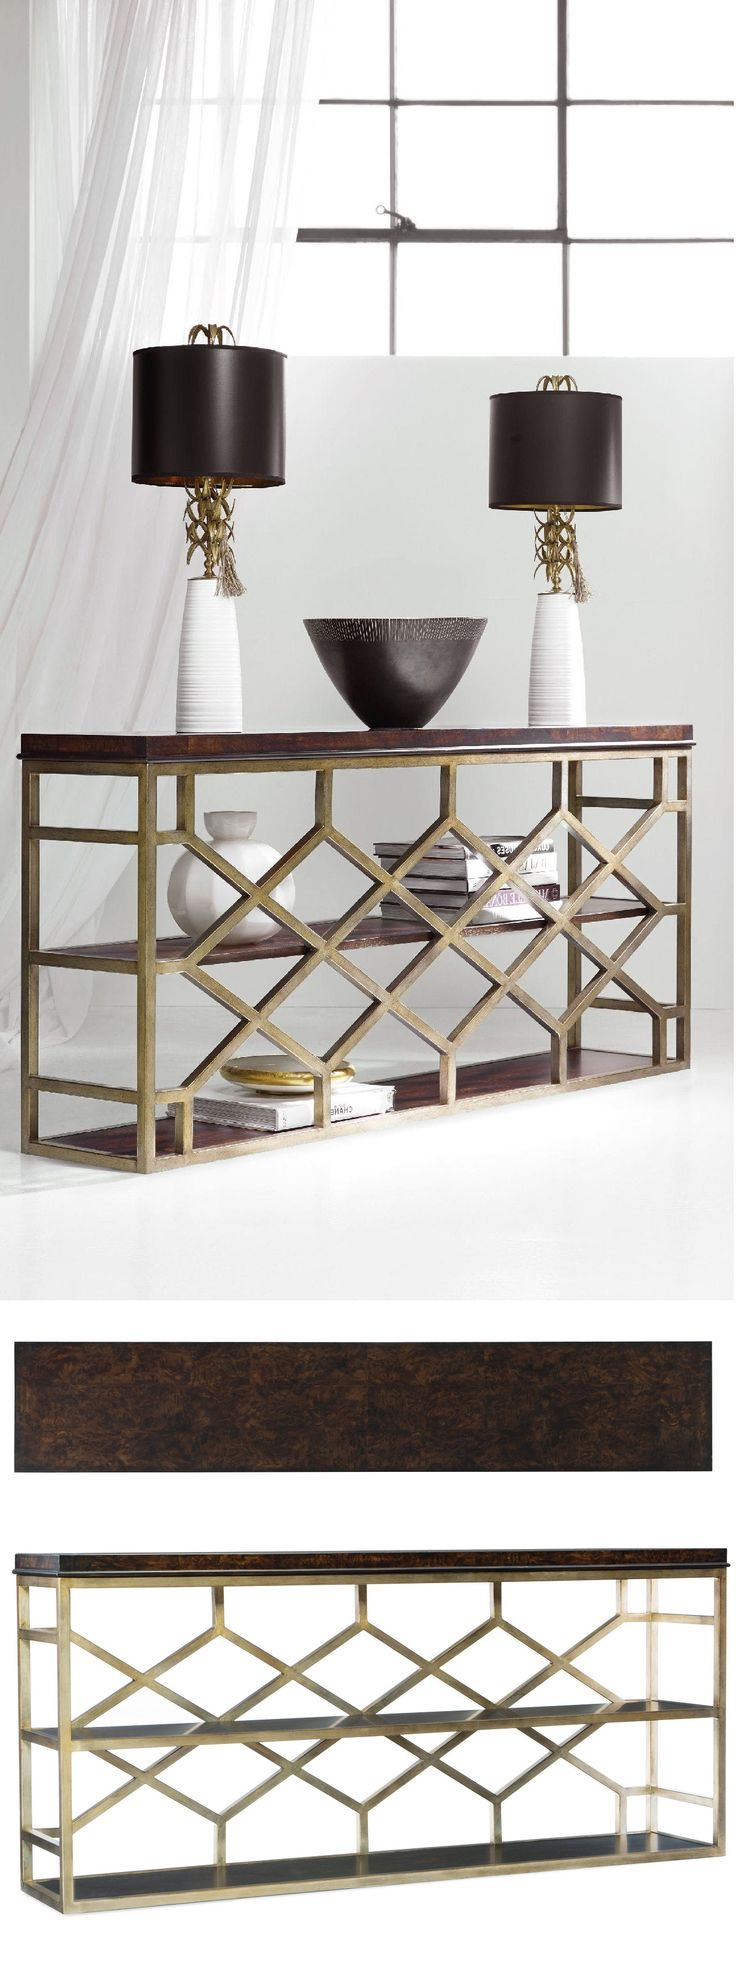 Narrow Tables | Narrow Table | Sofa Tables | Console Table | Hotel Room Furniture | Hotel Room Furniture Design | Furniture for Hotels | Hotel Bedroom Furniture | Hotel Suite Furniture | Furniture for Hotel | Furniture for Hotel Rooms | Hospitality Furniture | Hotel Guest Room Furniture | Hotel Furniture | Hotel Furniture Manufacturers | Hotel Furniture Manufacturer | Hotel Furniture Suppliers | Hotel Furniture Supplier | Over 100 Designs @ www.instyle-decor.com/narrow-tables.html HOLLYWOOD